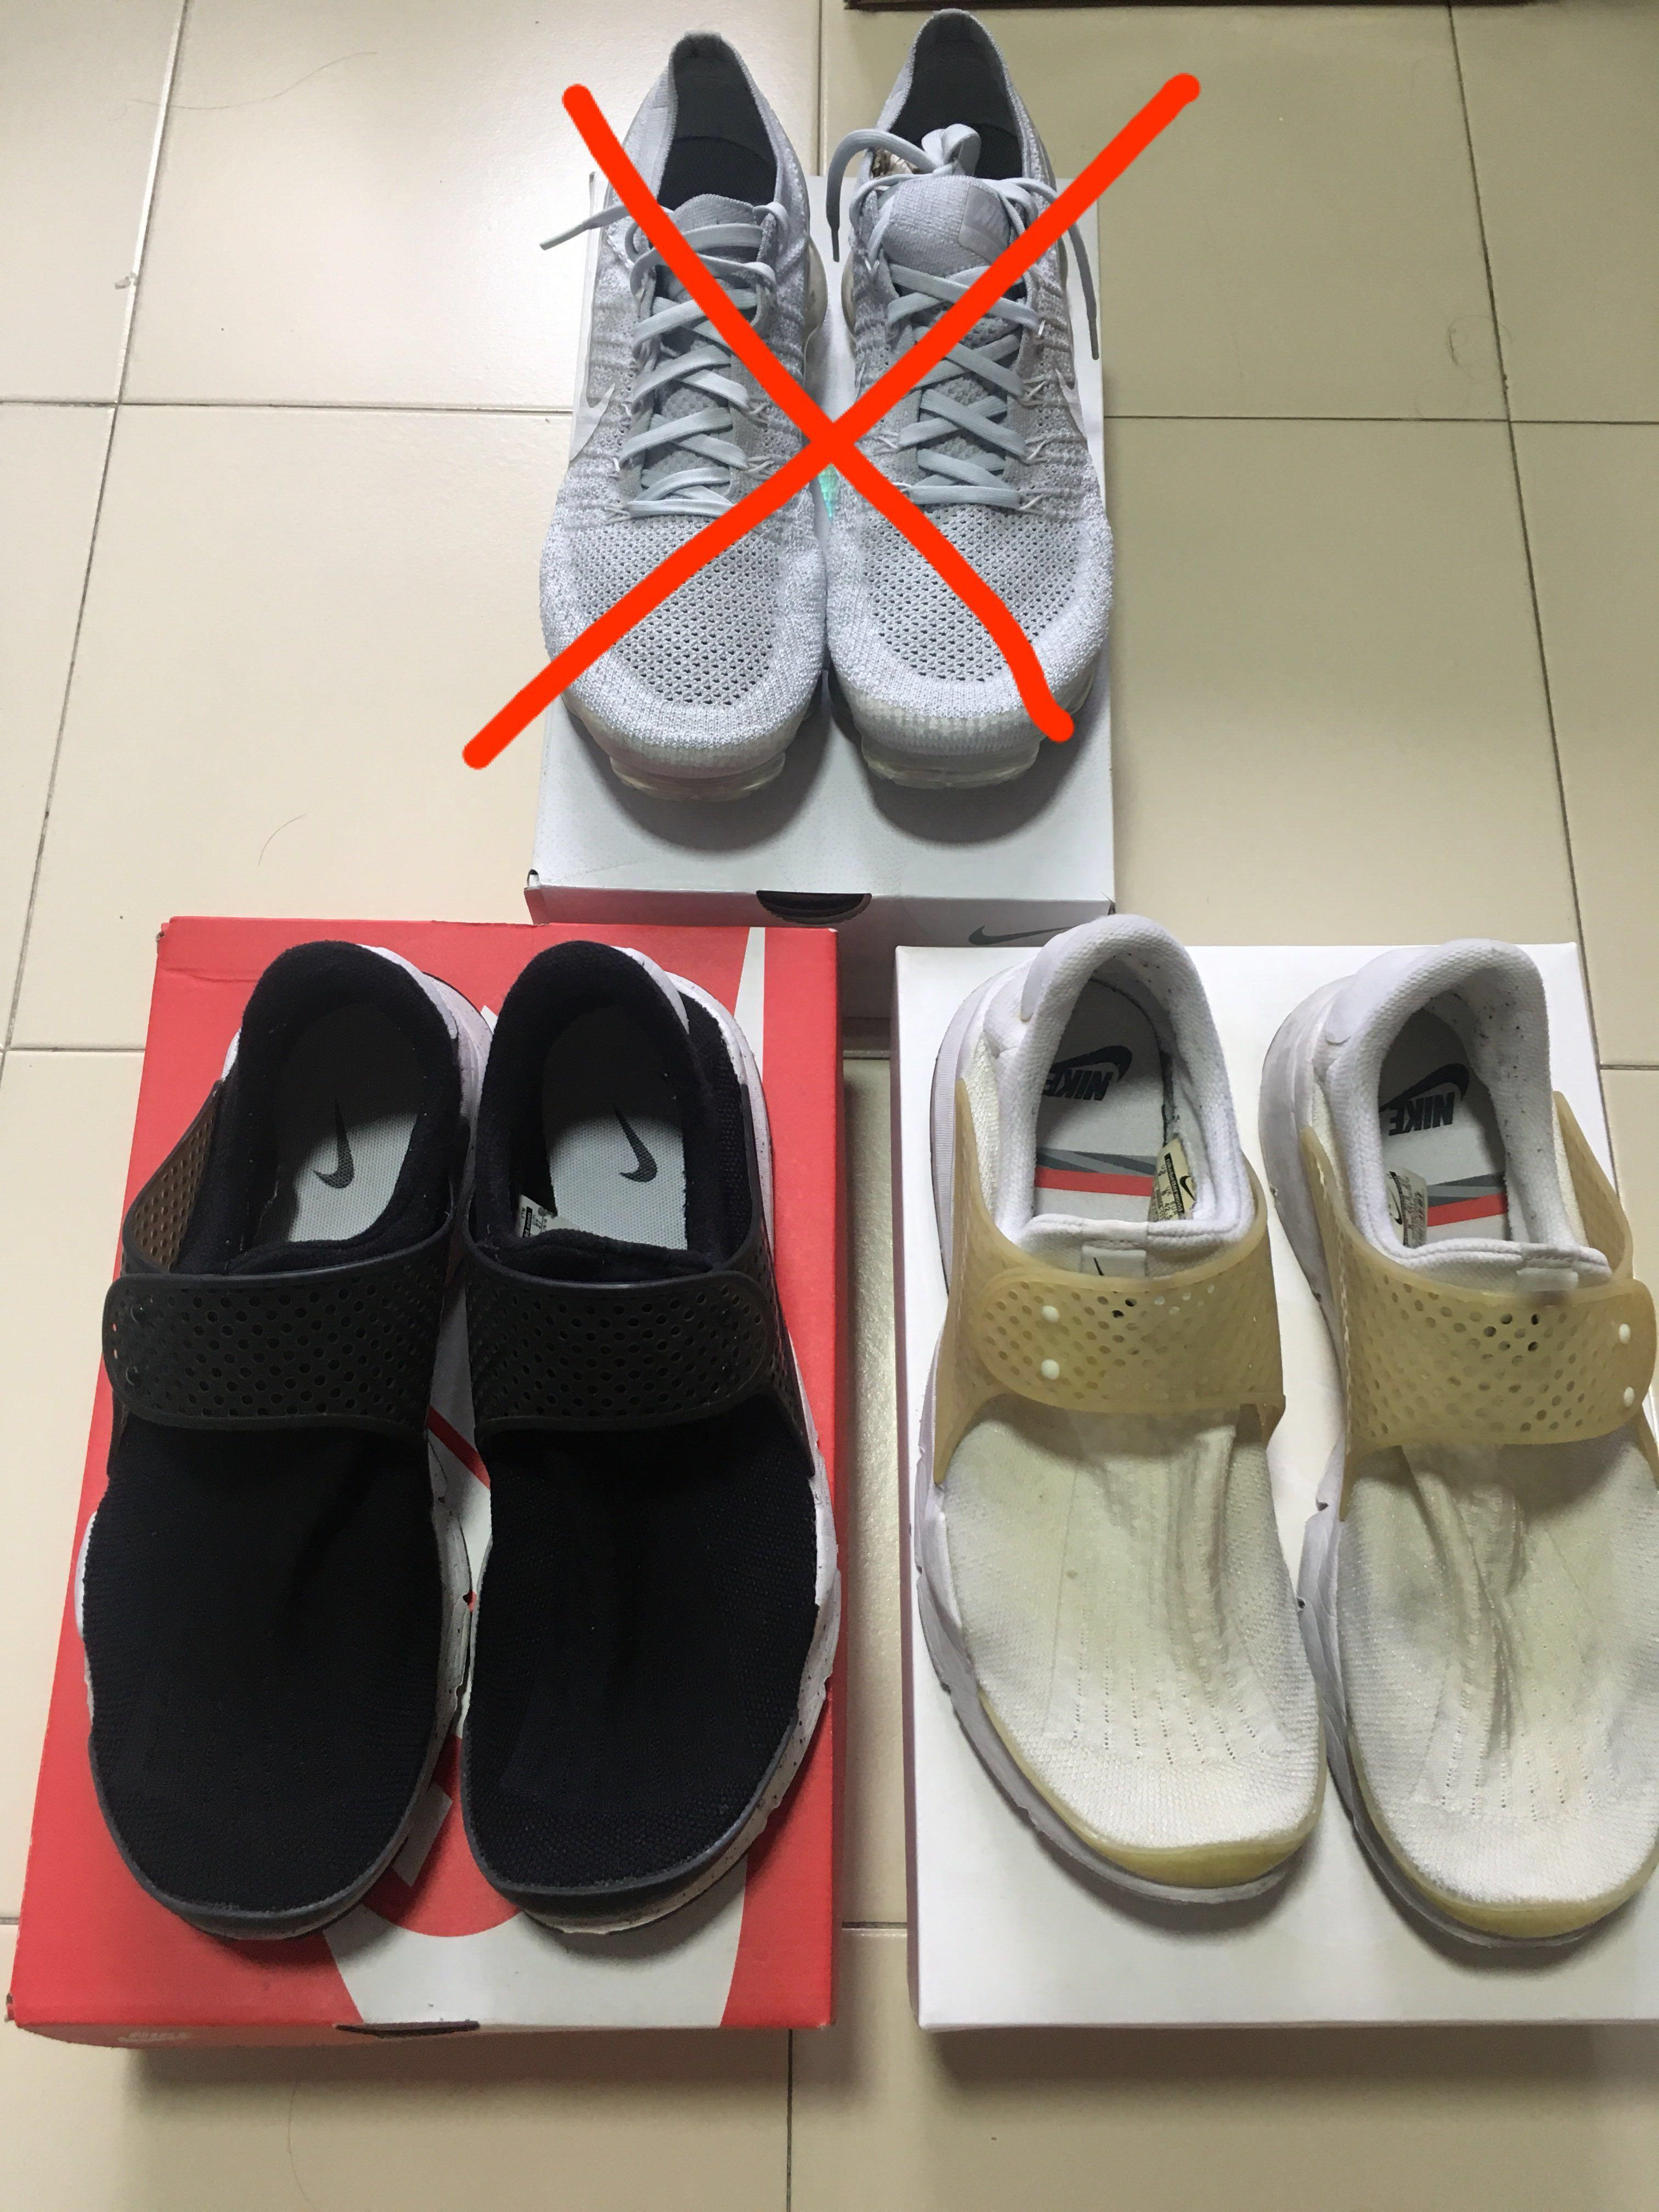 reputable site 5a2d0 caf6c Nike Sneakers Clearance (Vapormax/Sock Dart), Men's Fashion ...